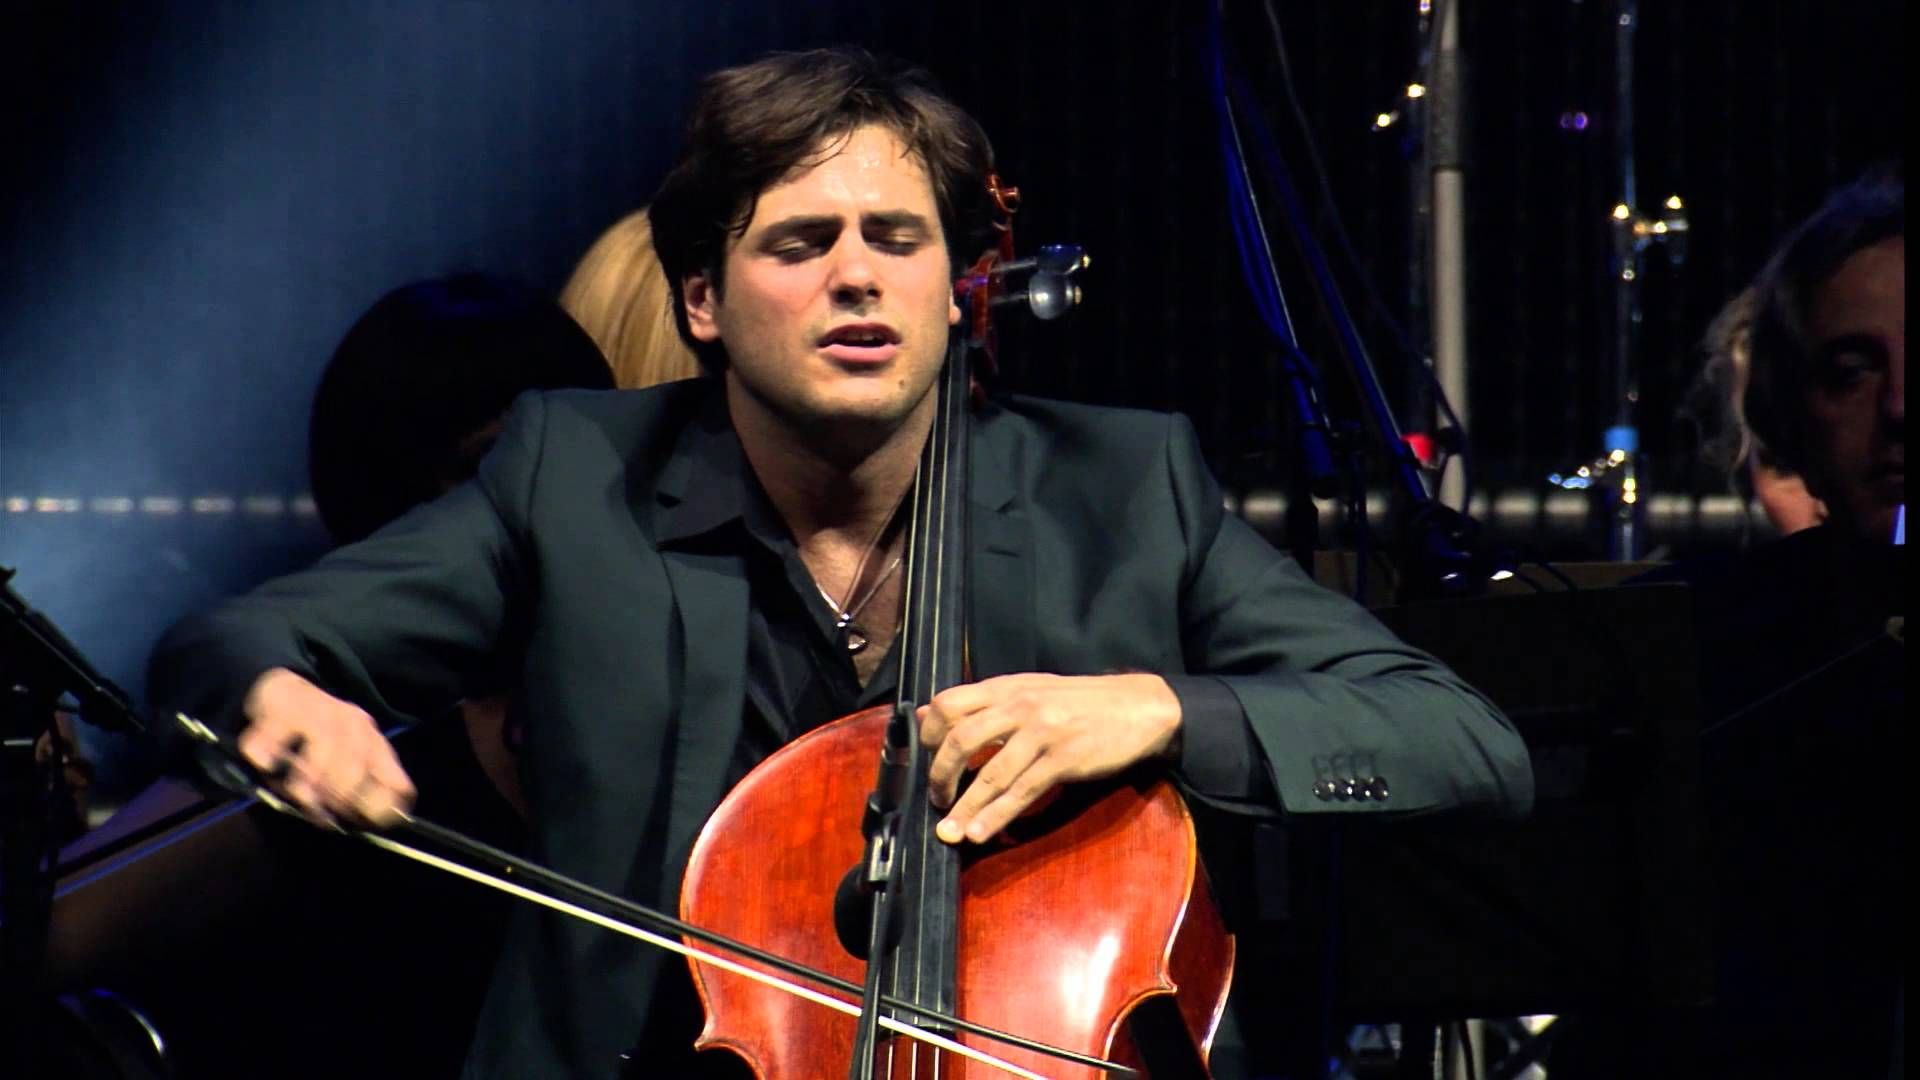 Stjepan Hauser - Oblivion (Piazzolla) I kind of life I lived,worked